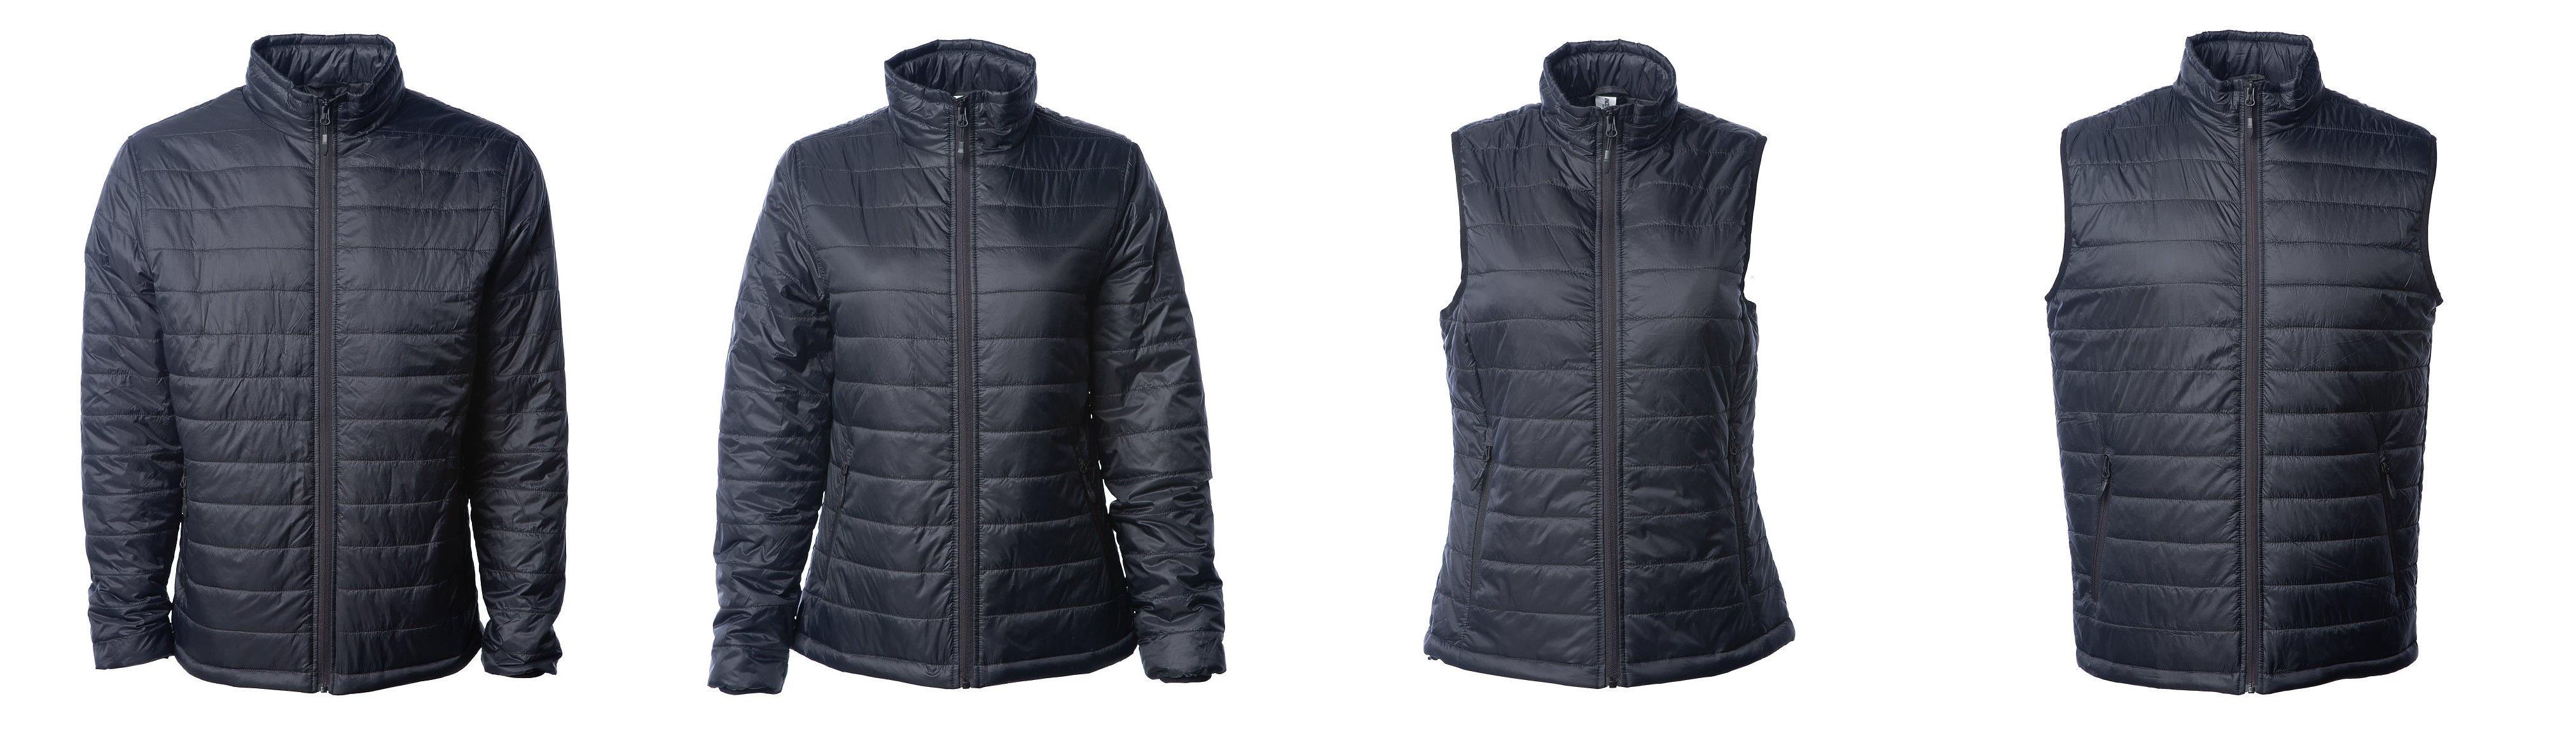 Independent Trading Puffer Jackets from NYFifth